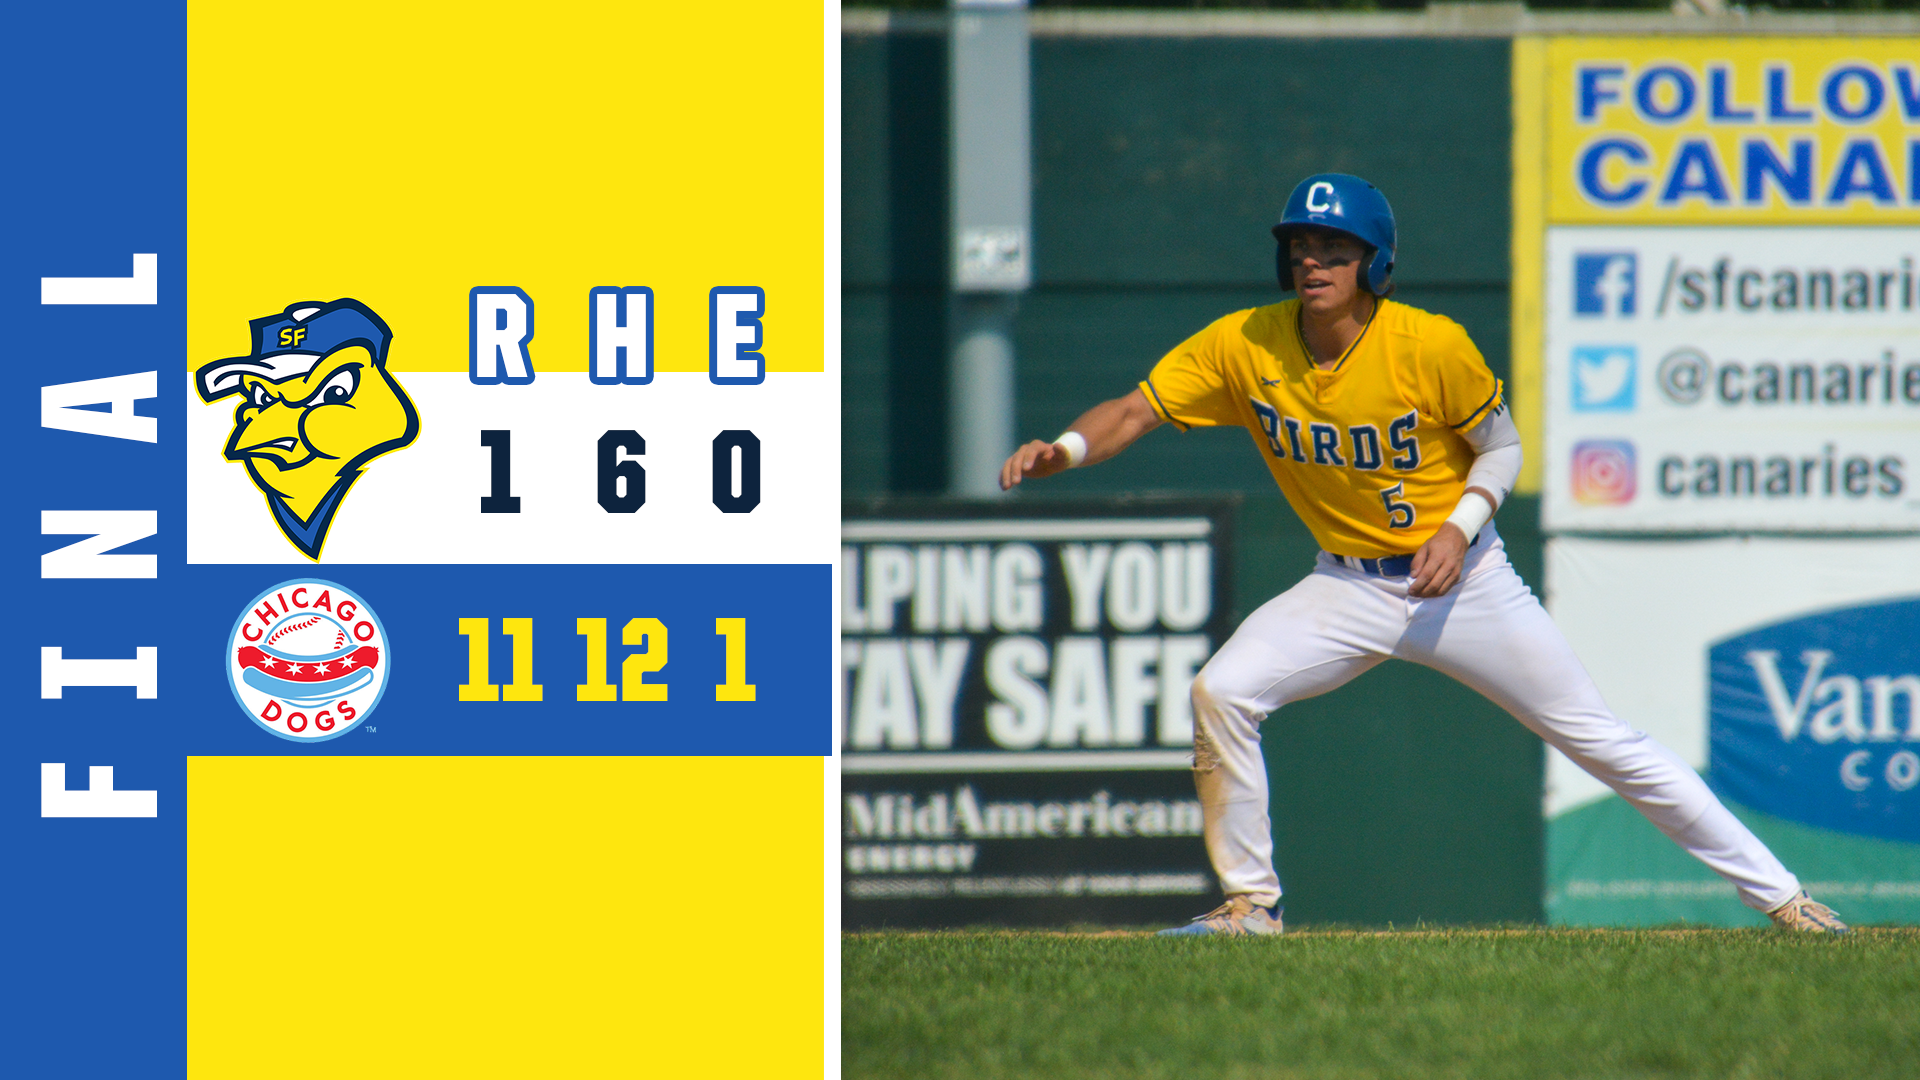 Dogs Complete Sweep with Decisive Win over Canaries